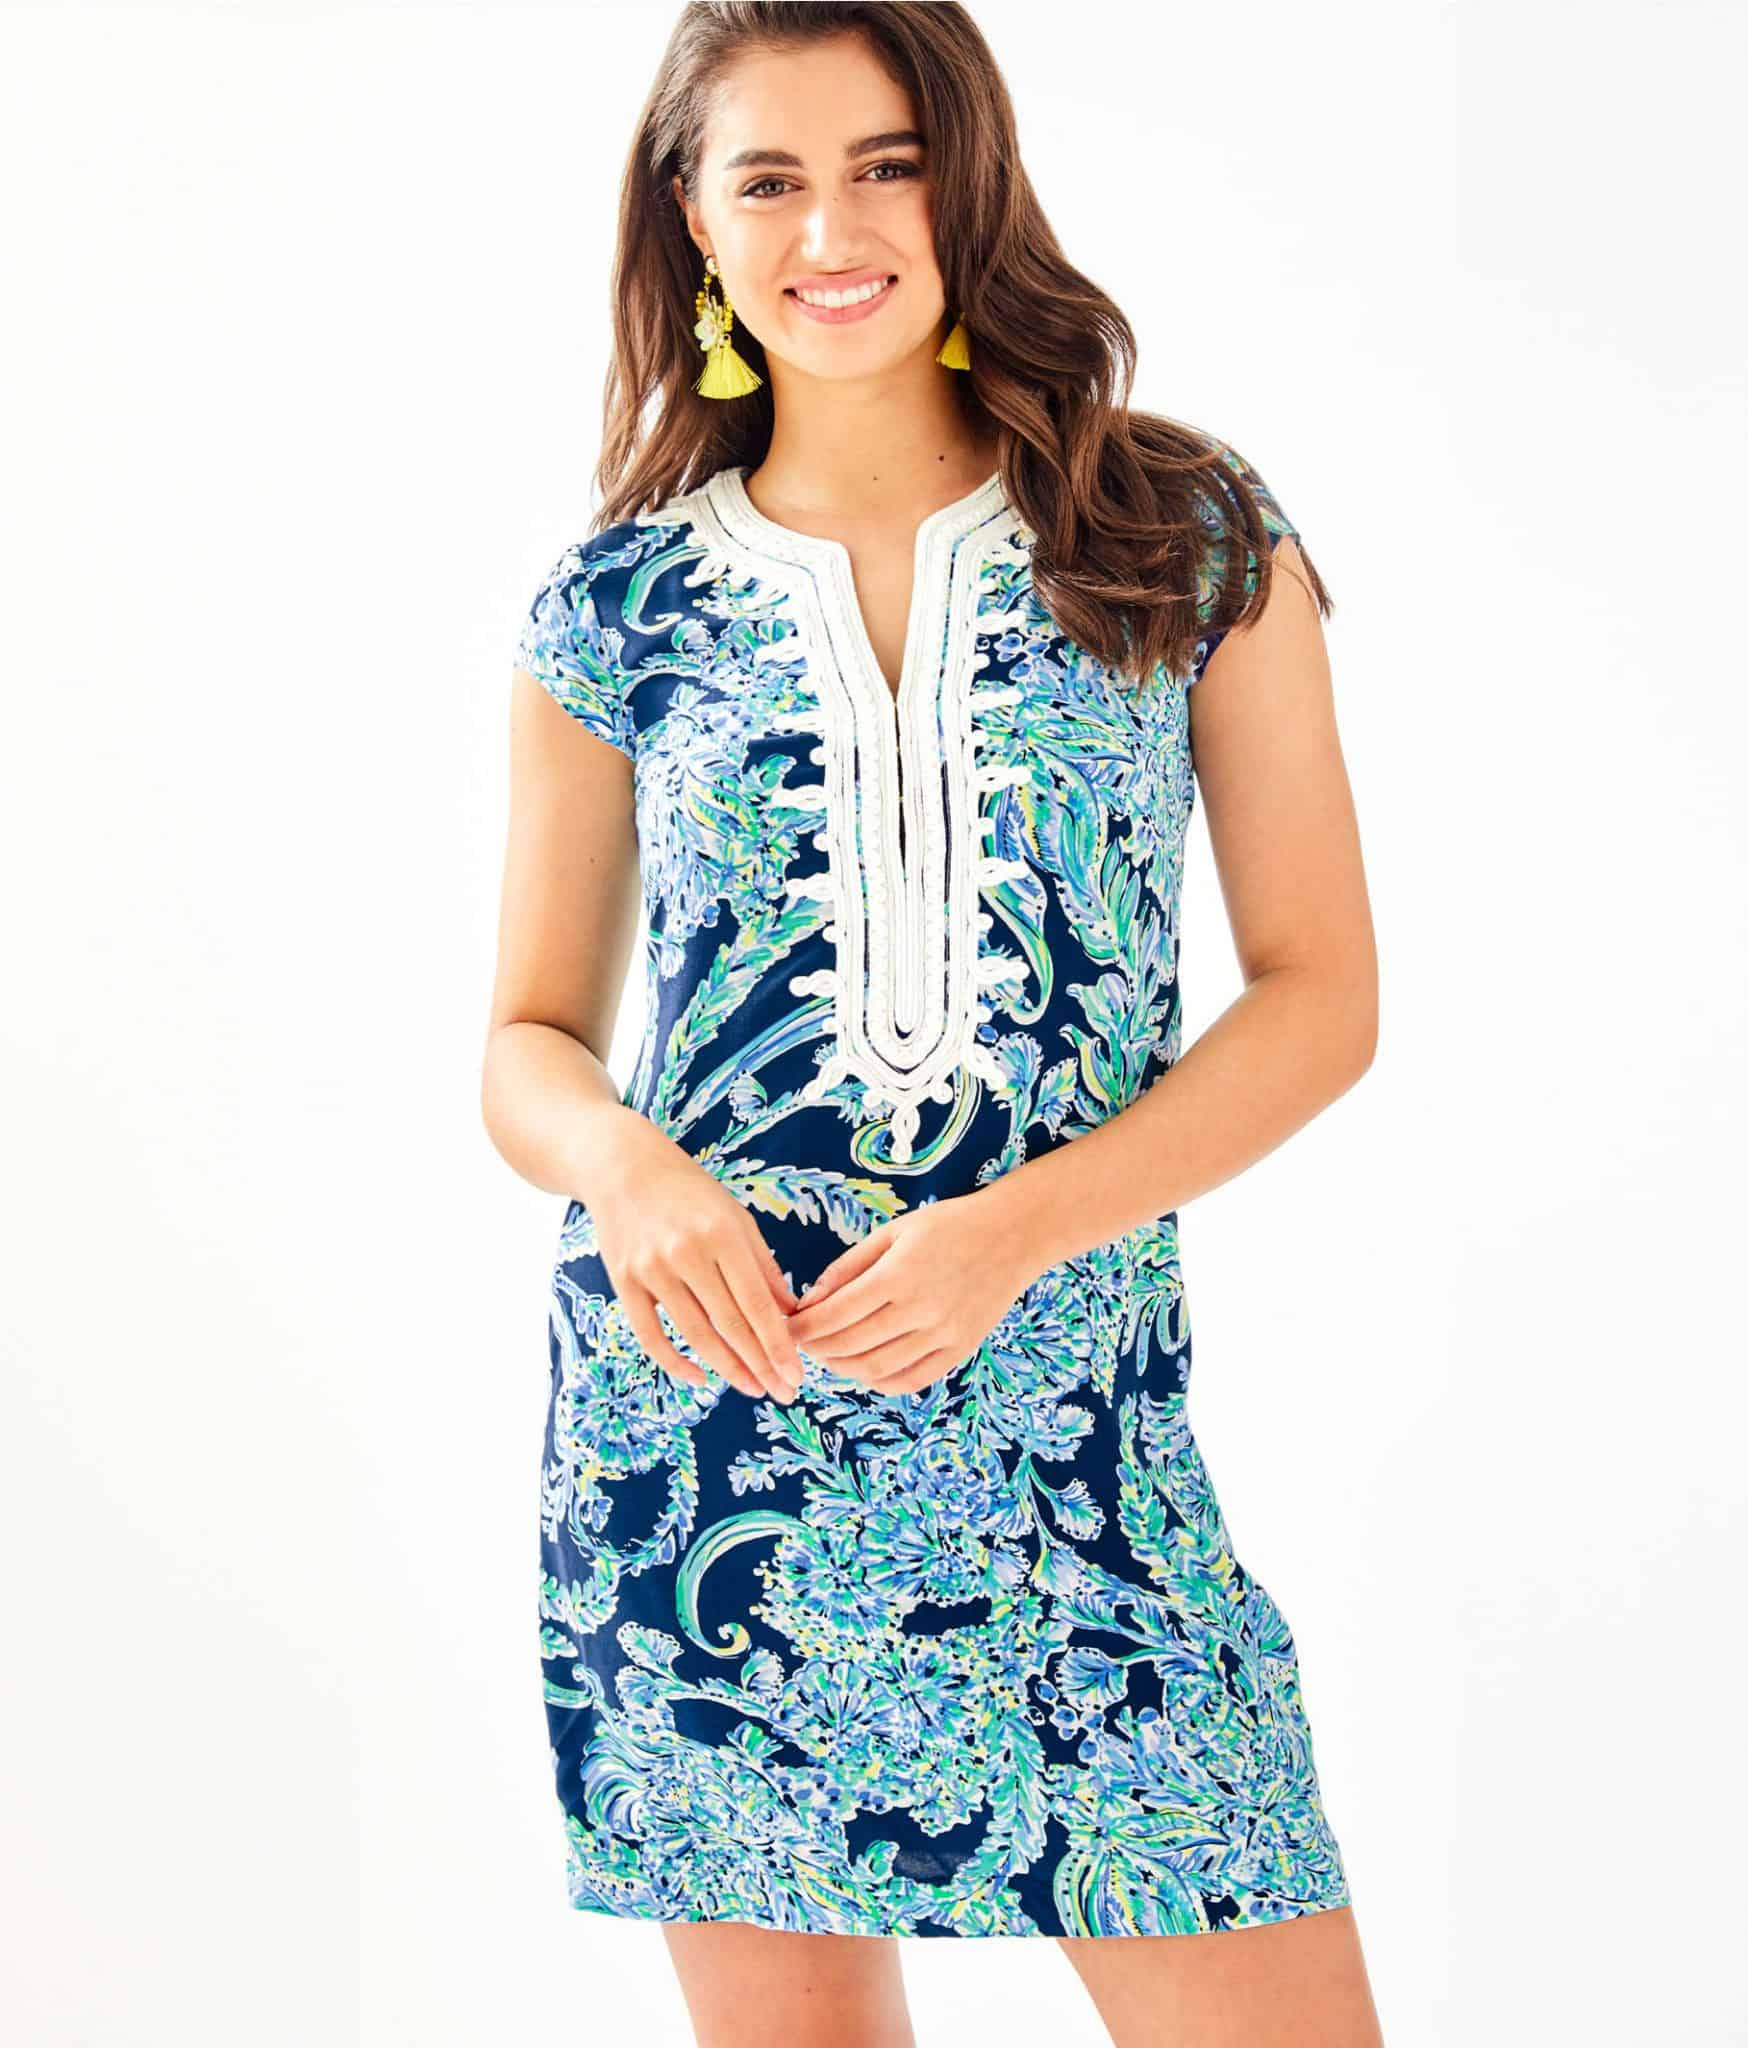 Lilly Pulitzer After Party Sale favorites featured by top US fashion blog, Glamorous Versatility: image of Lilly Pulitzer Madia tunic dress